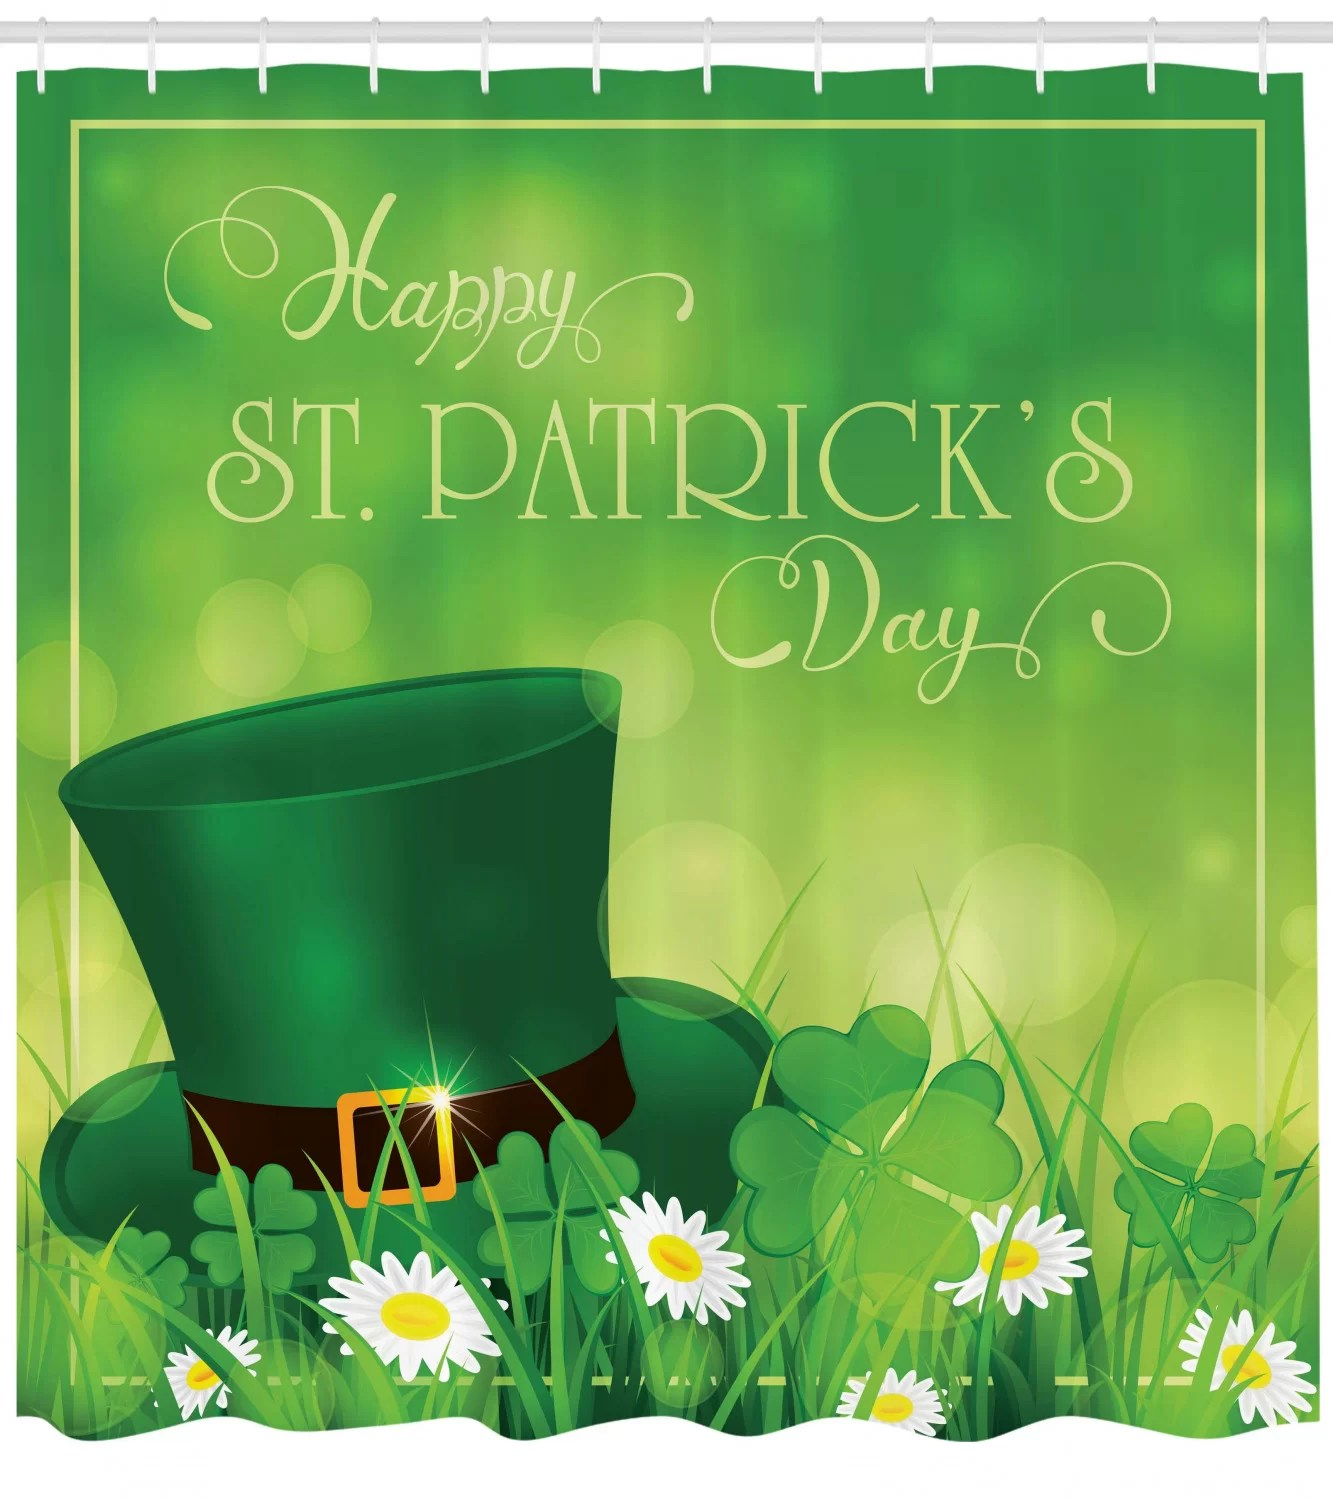 st patrick s day happy greetings for cultural day religion shamrock daisy and leprechaun hat single shower curtain